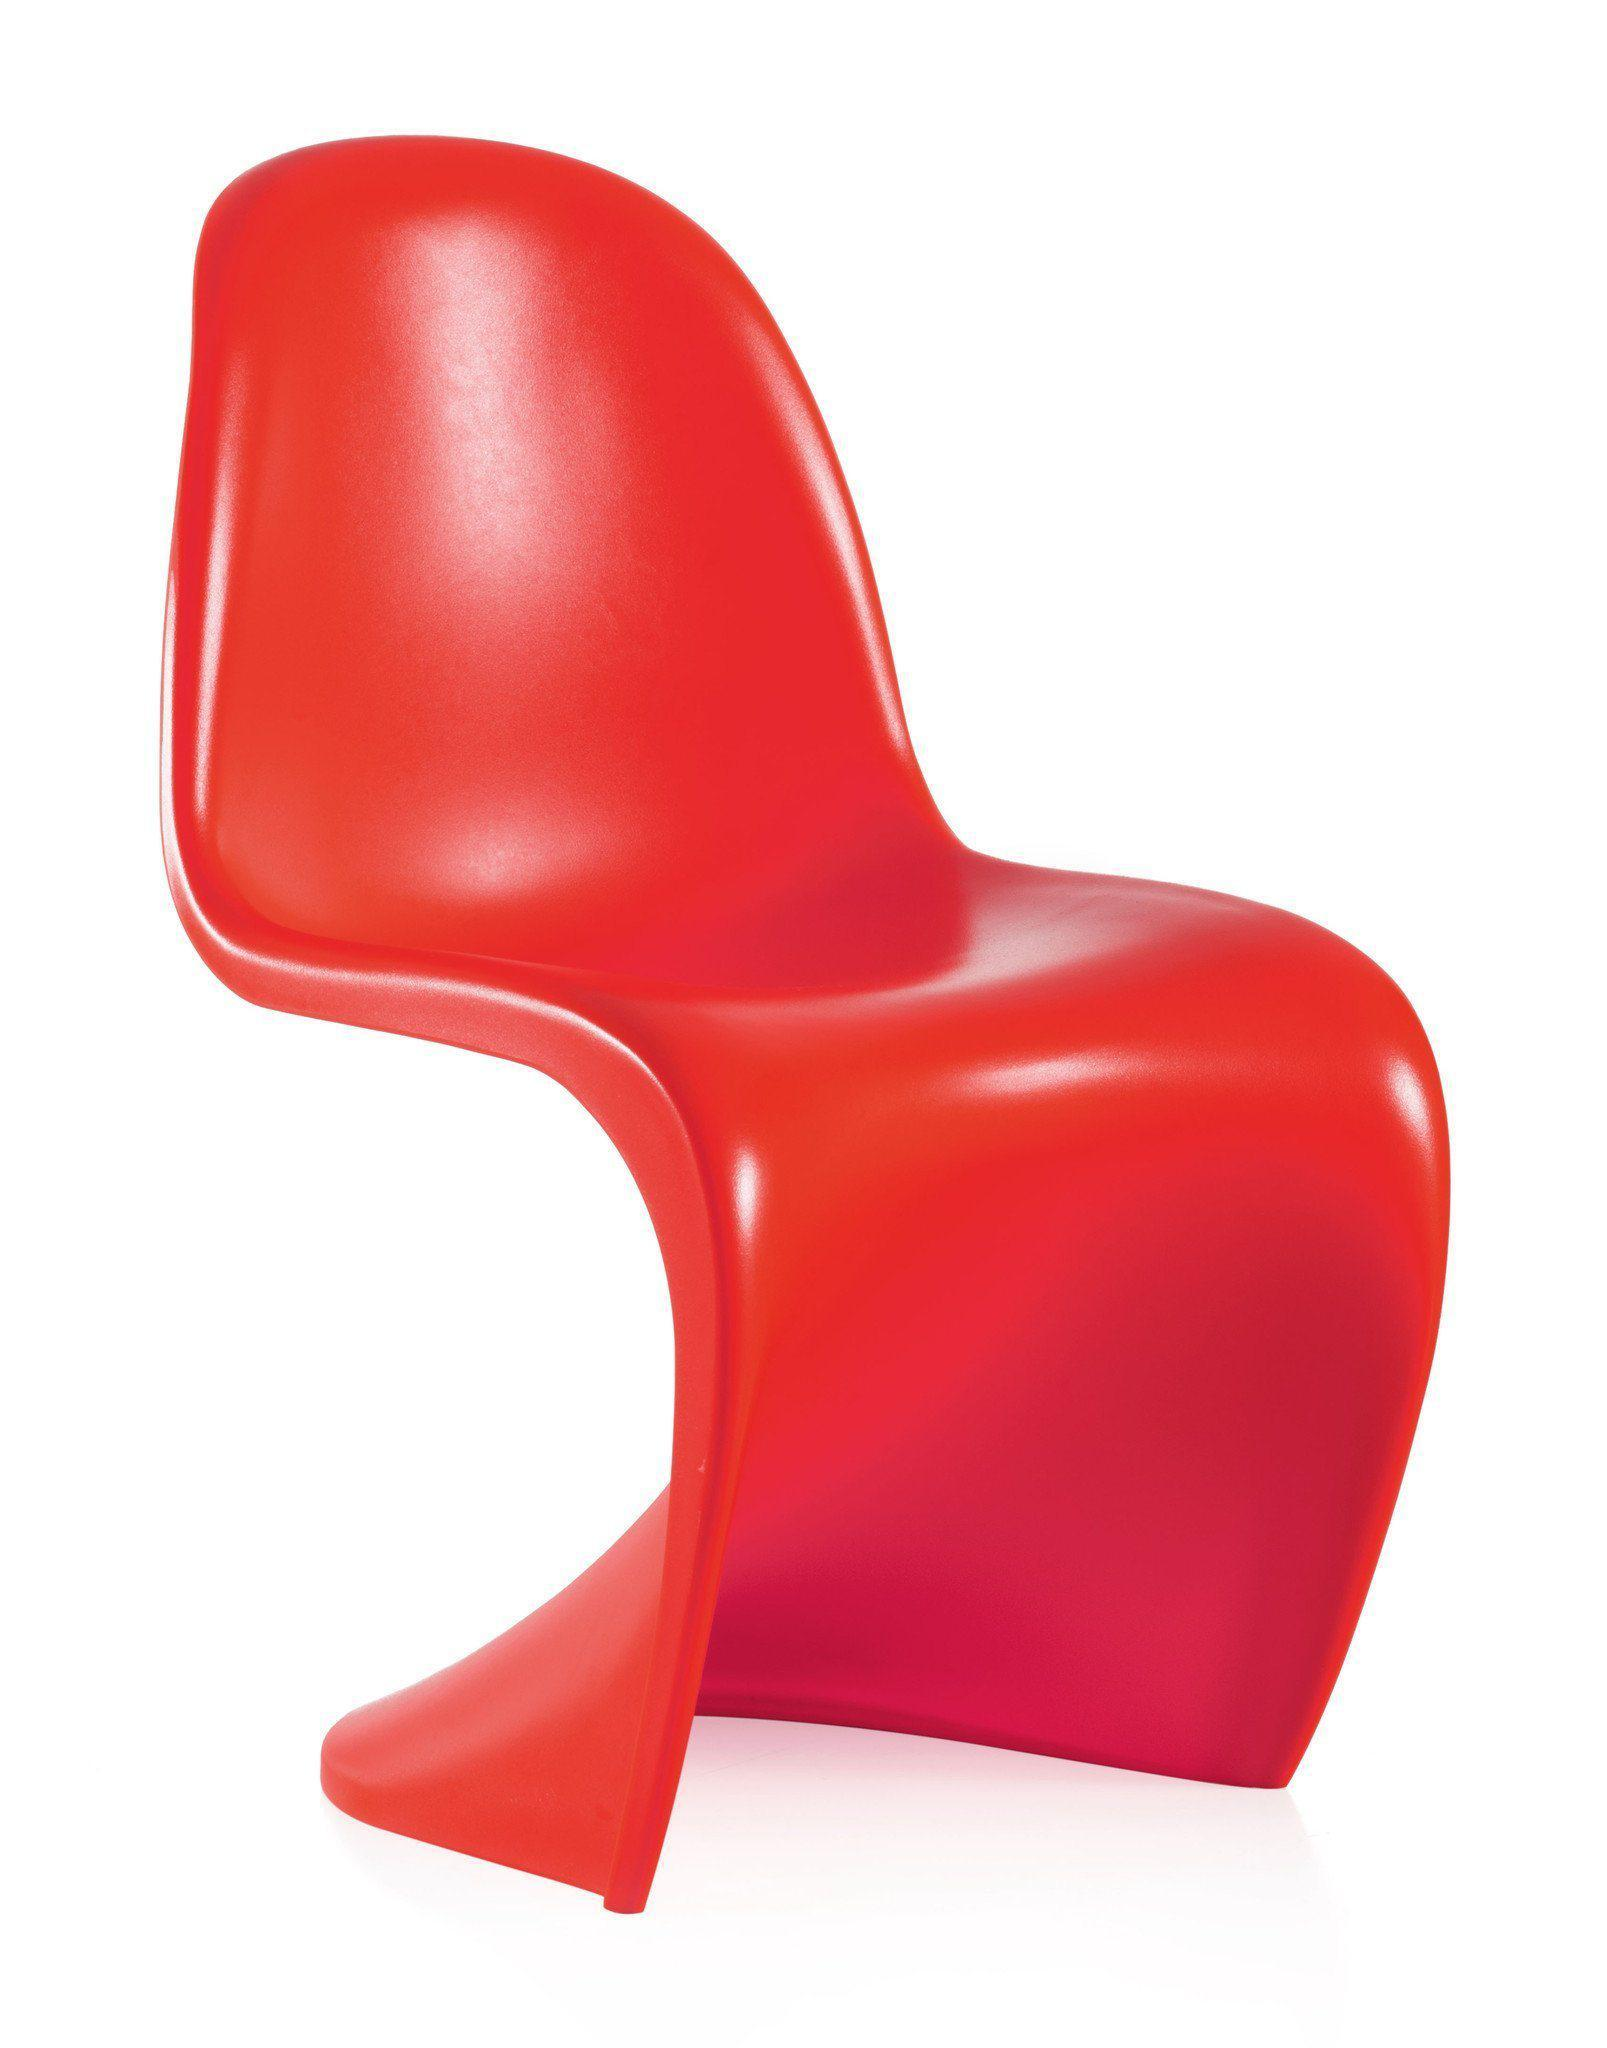 Verner Panton Chair Replica - Esque